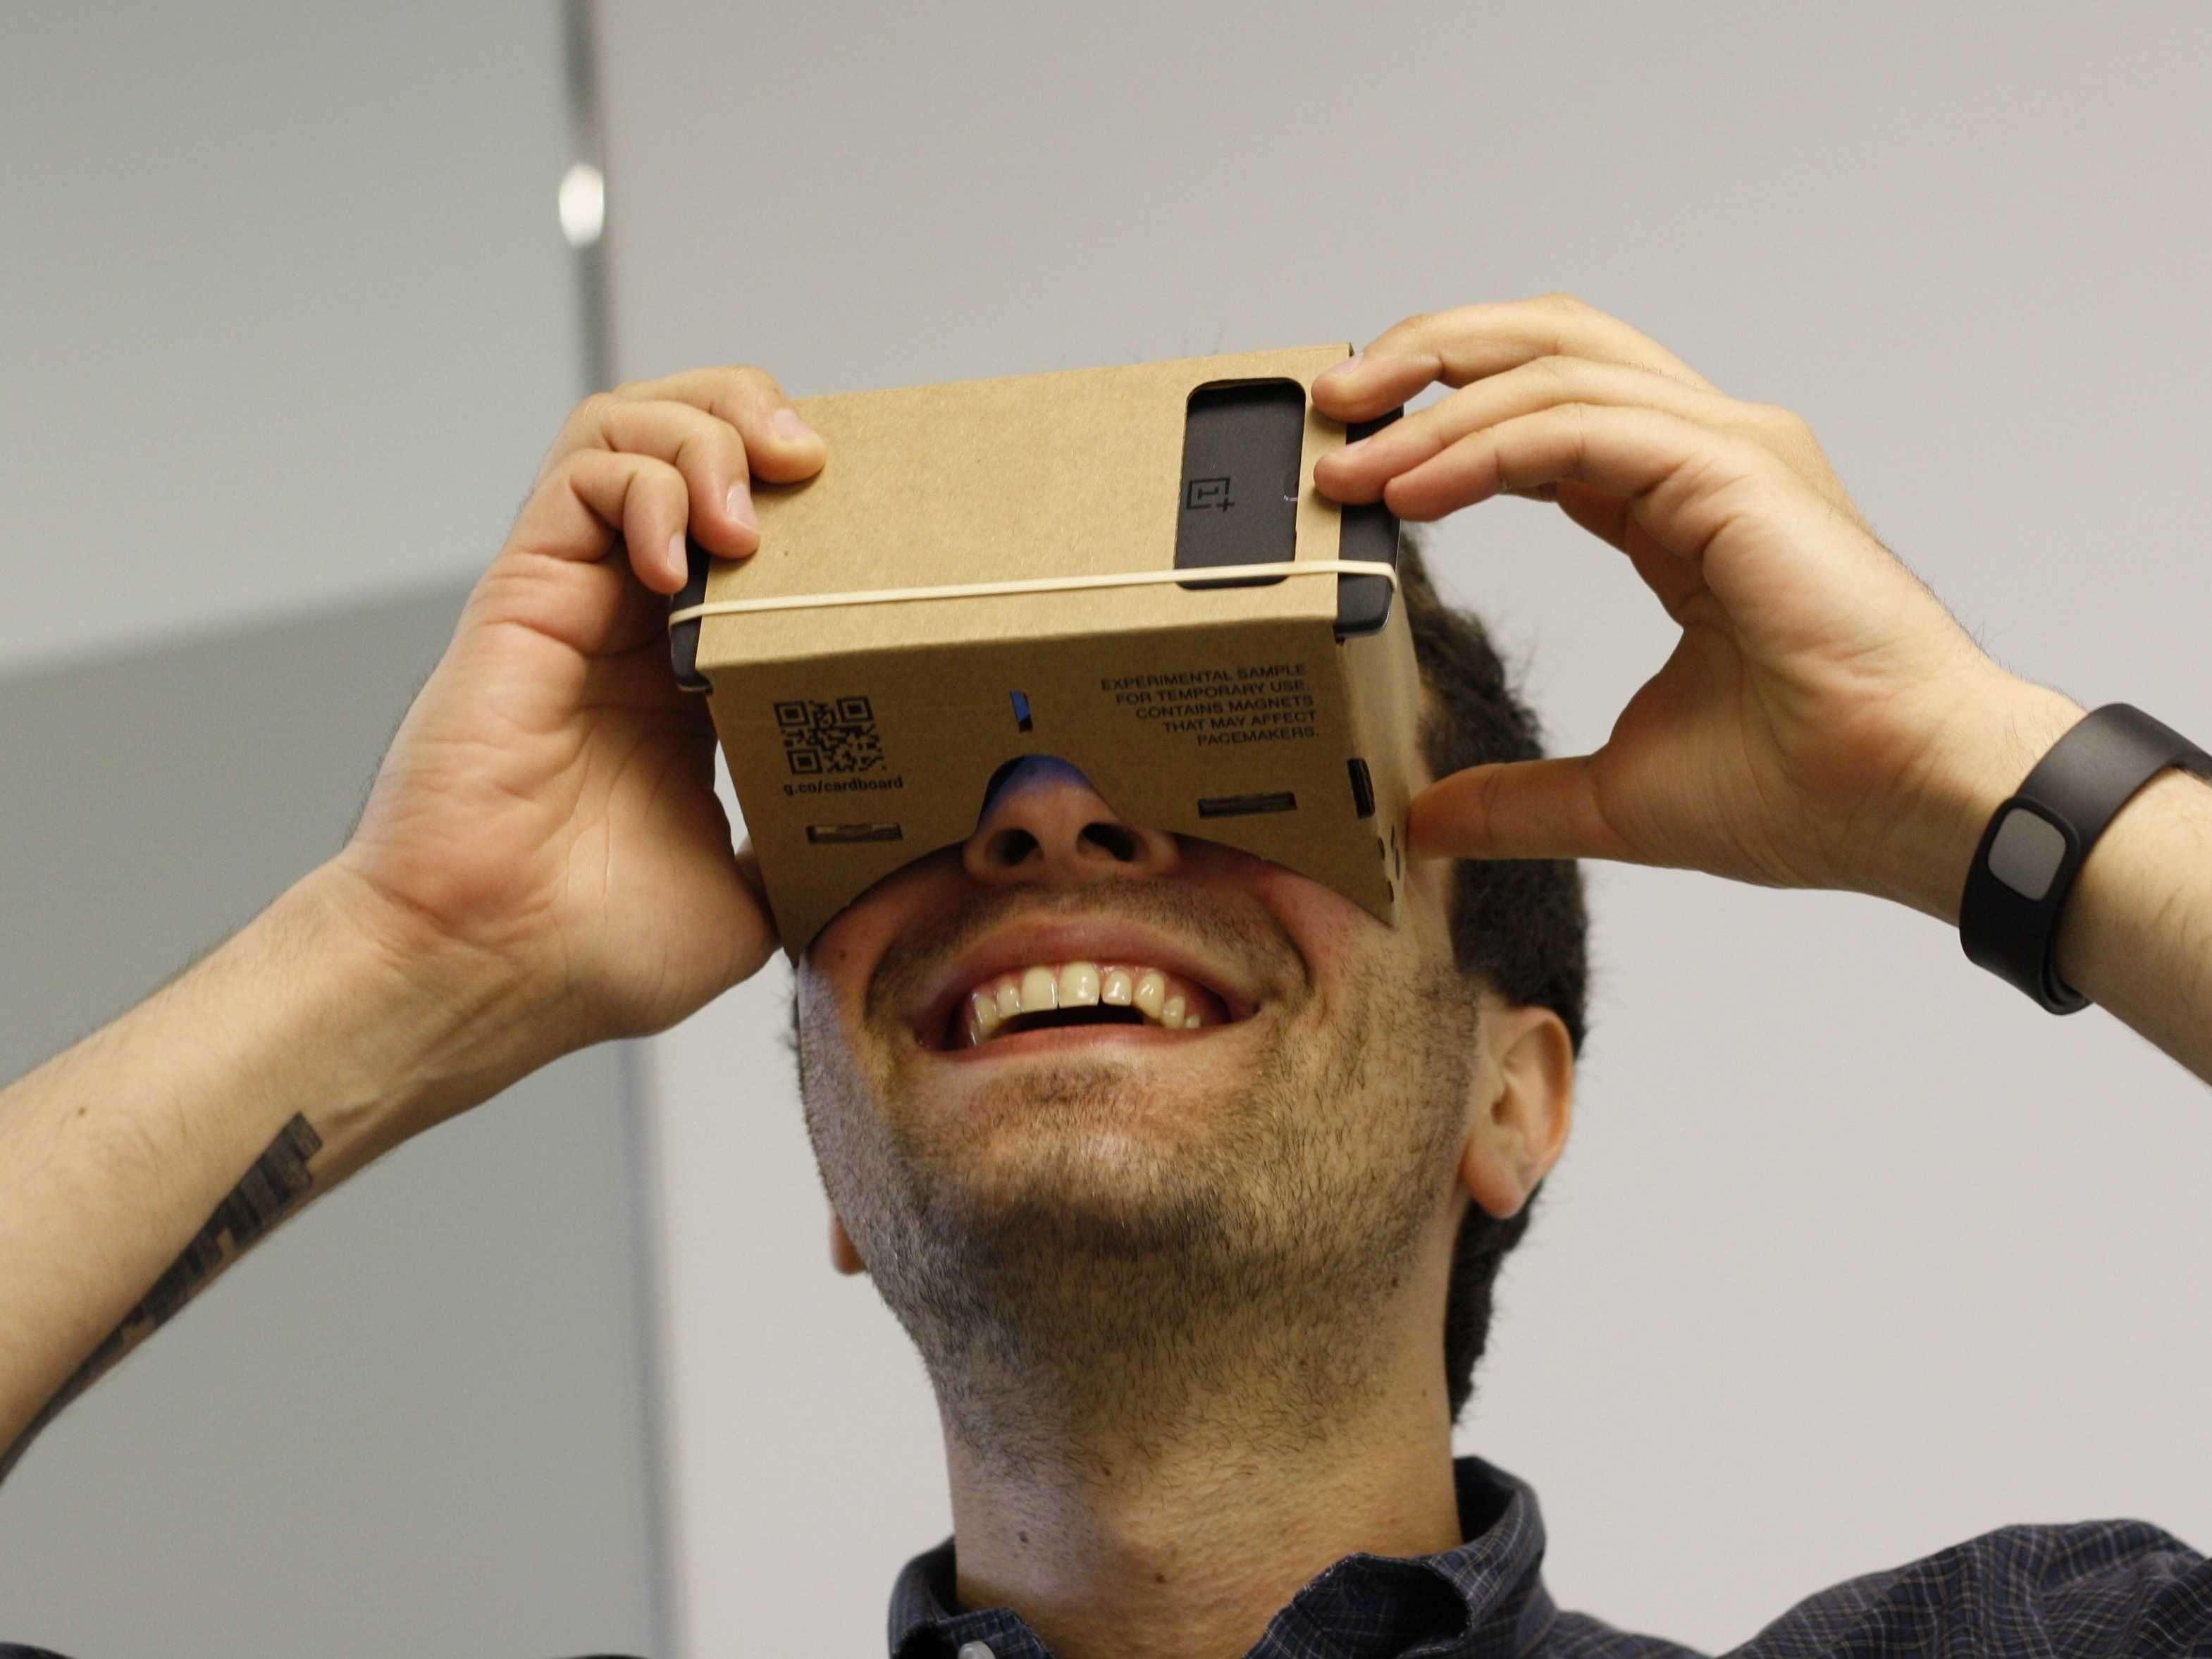 Google Cardboard Is Another Take On Virtual Reality